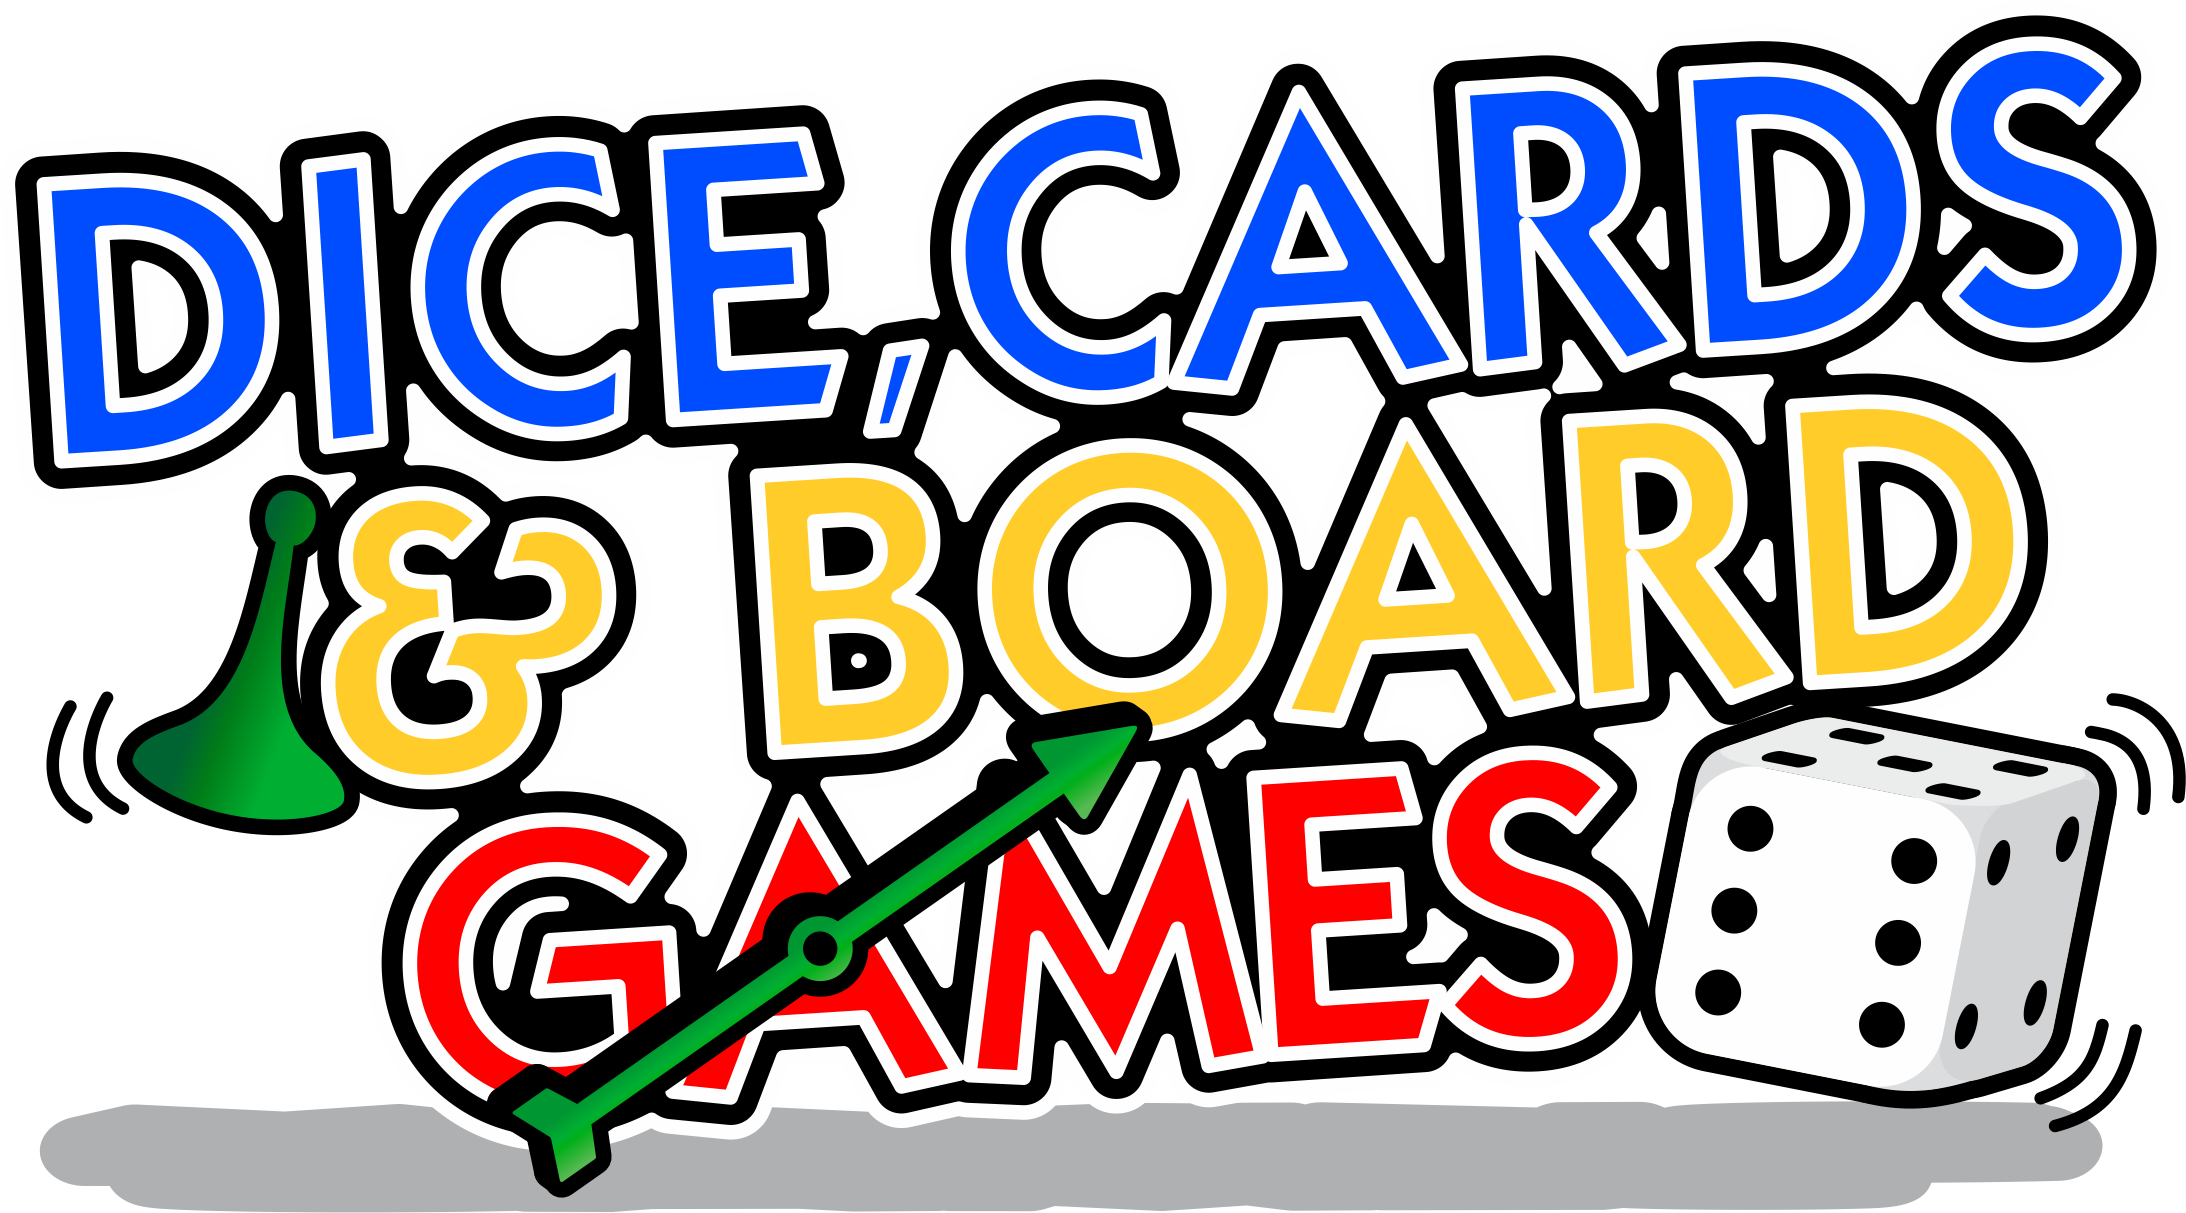 Game images gallery for. Free clipart of board games